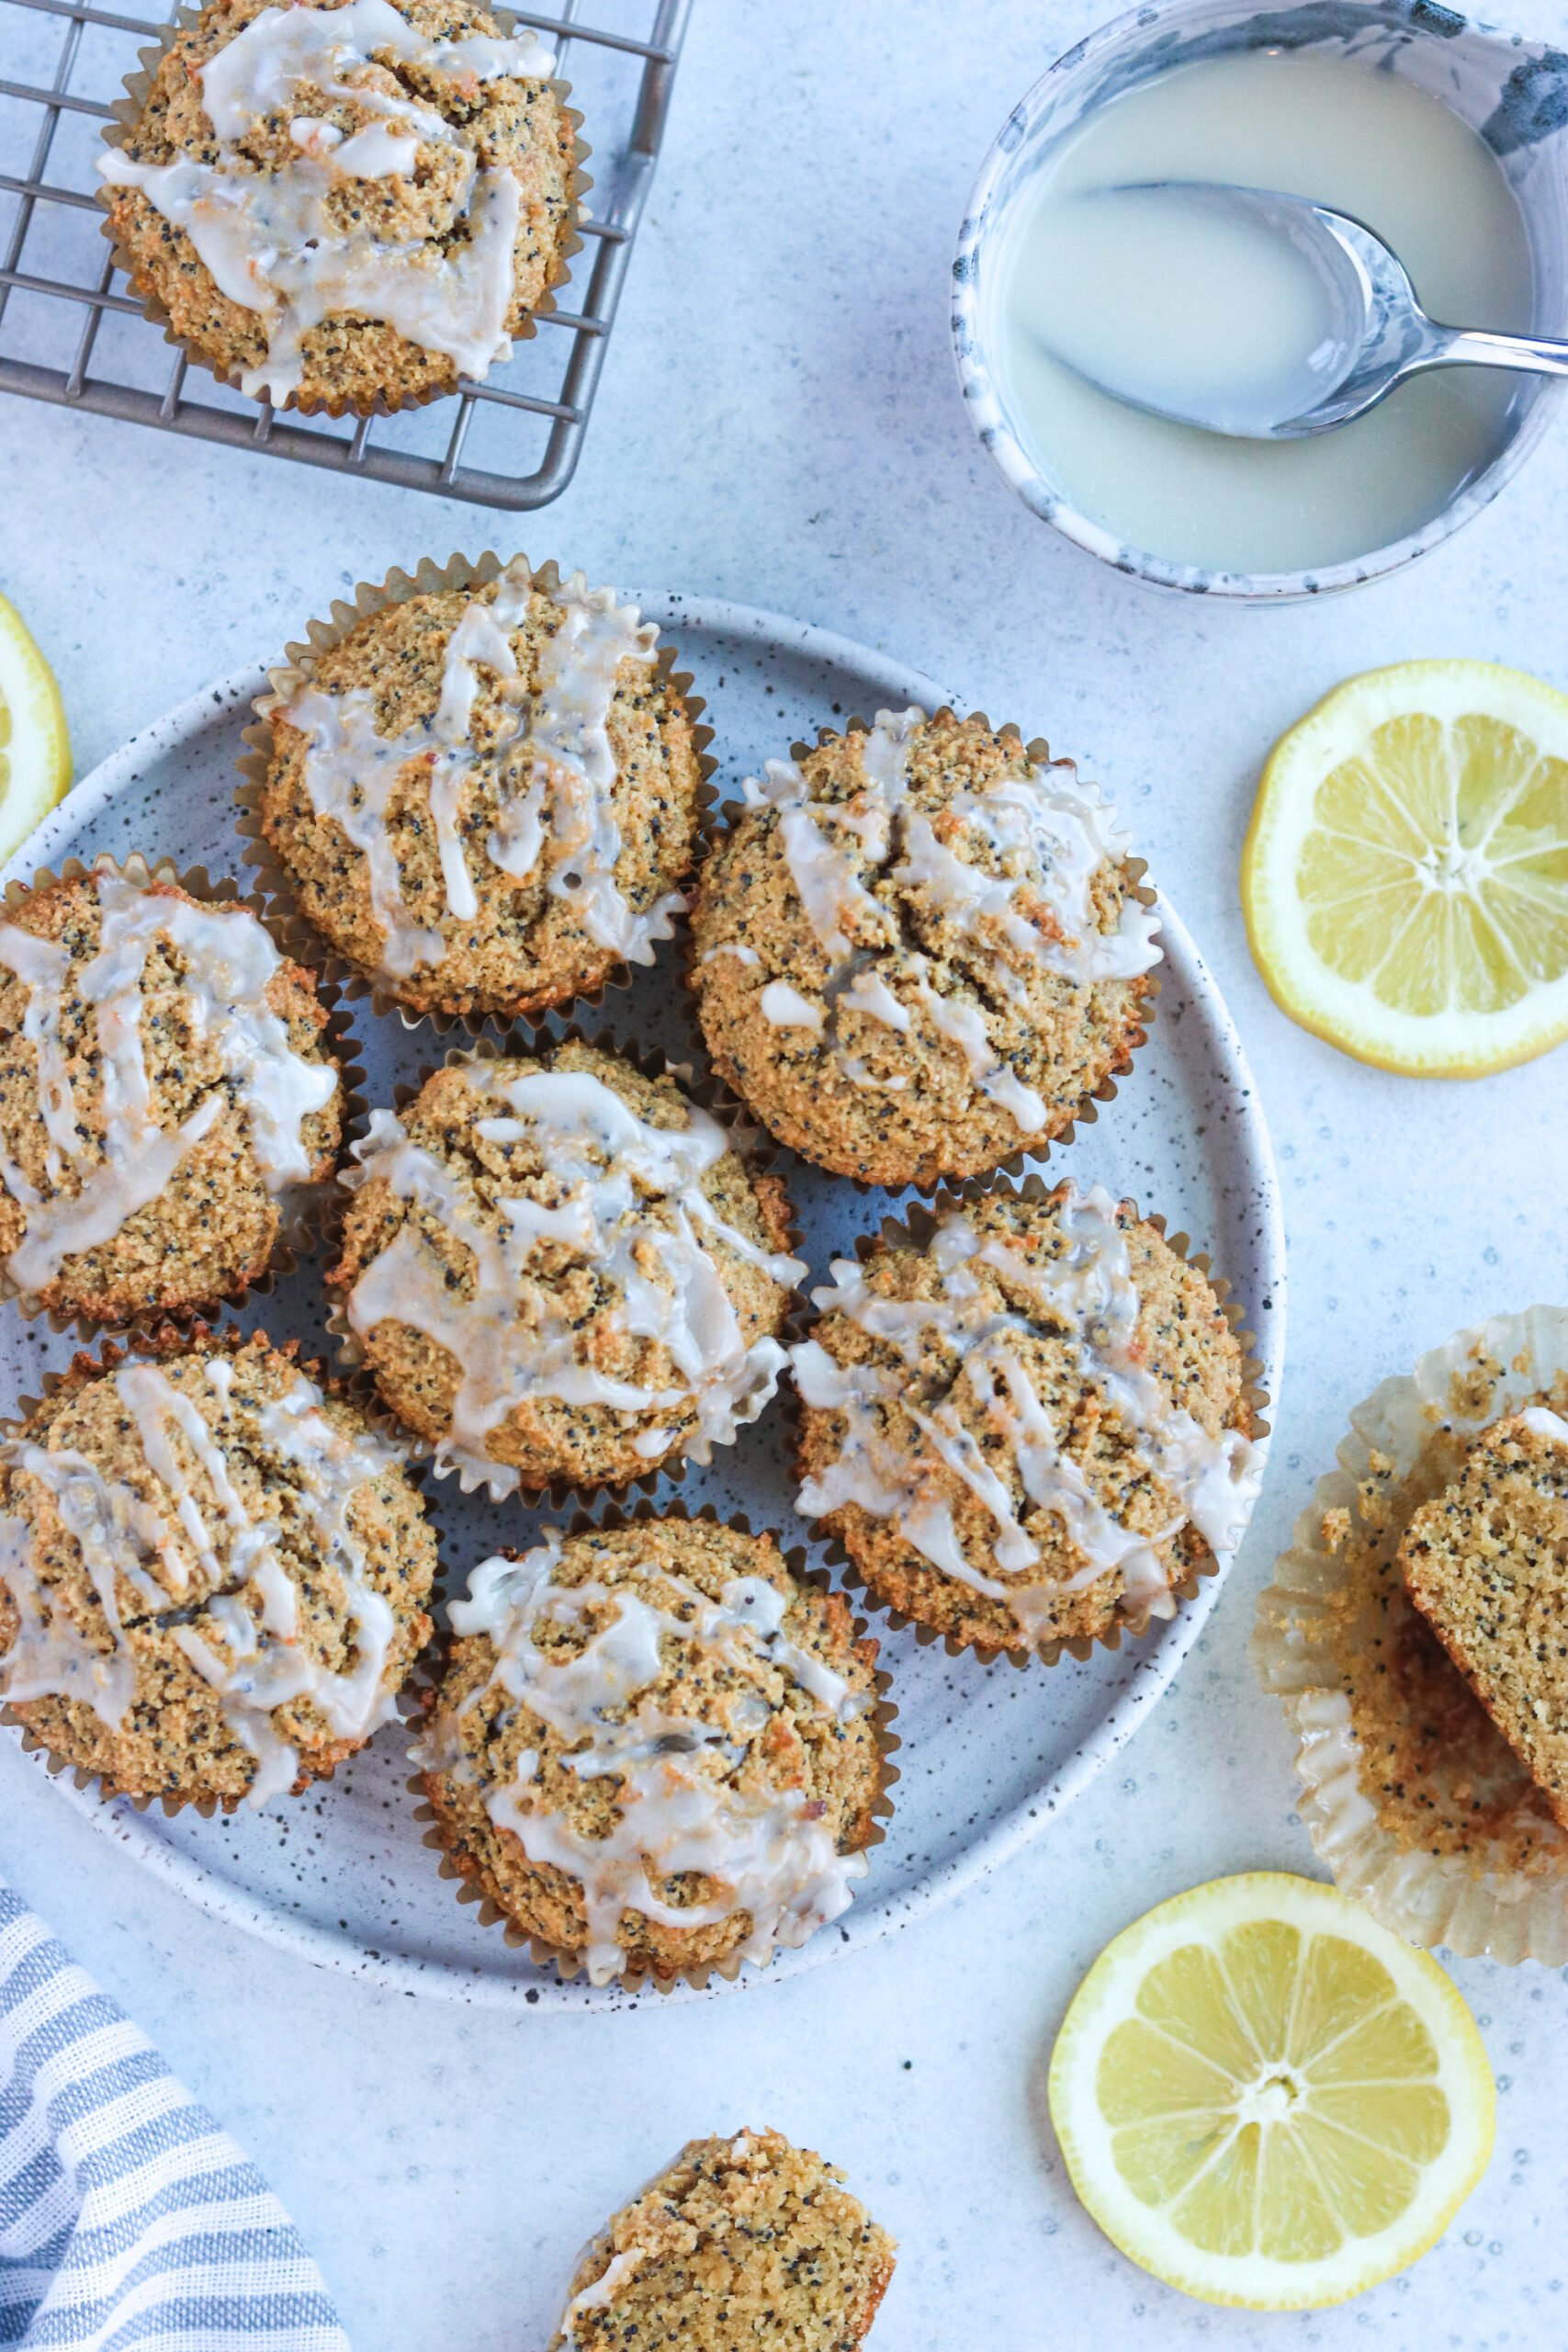 muffins on a plate with lemon surrounding it